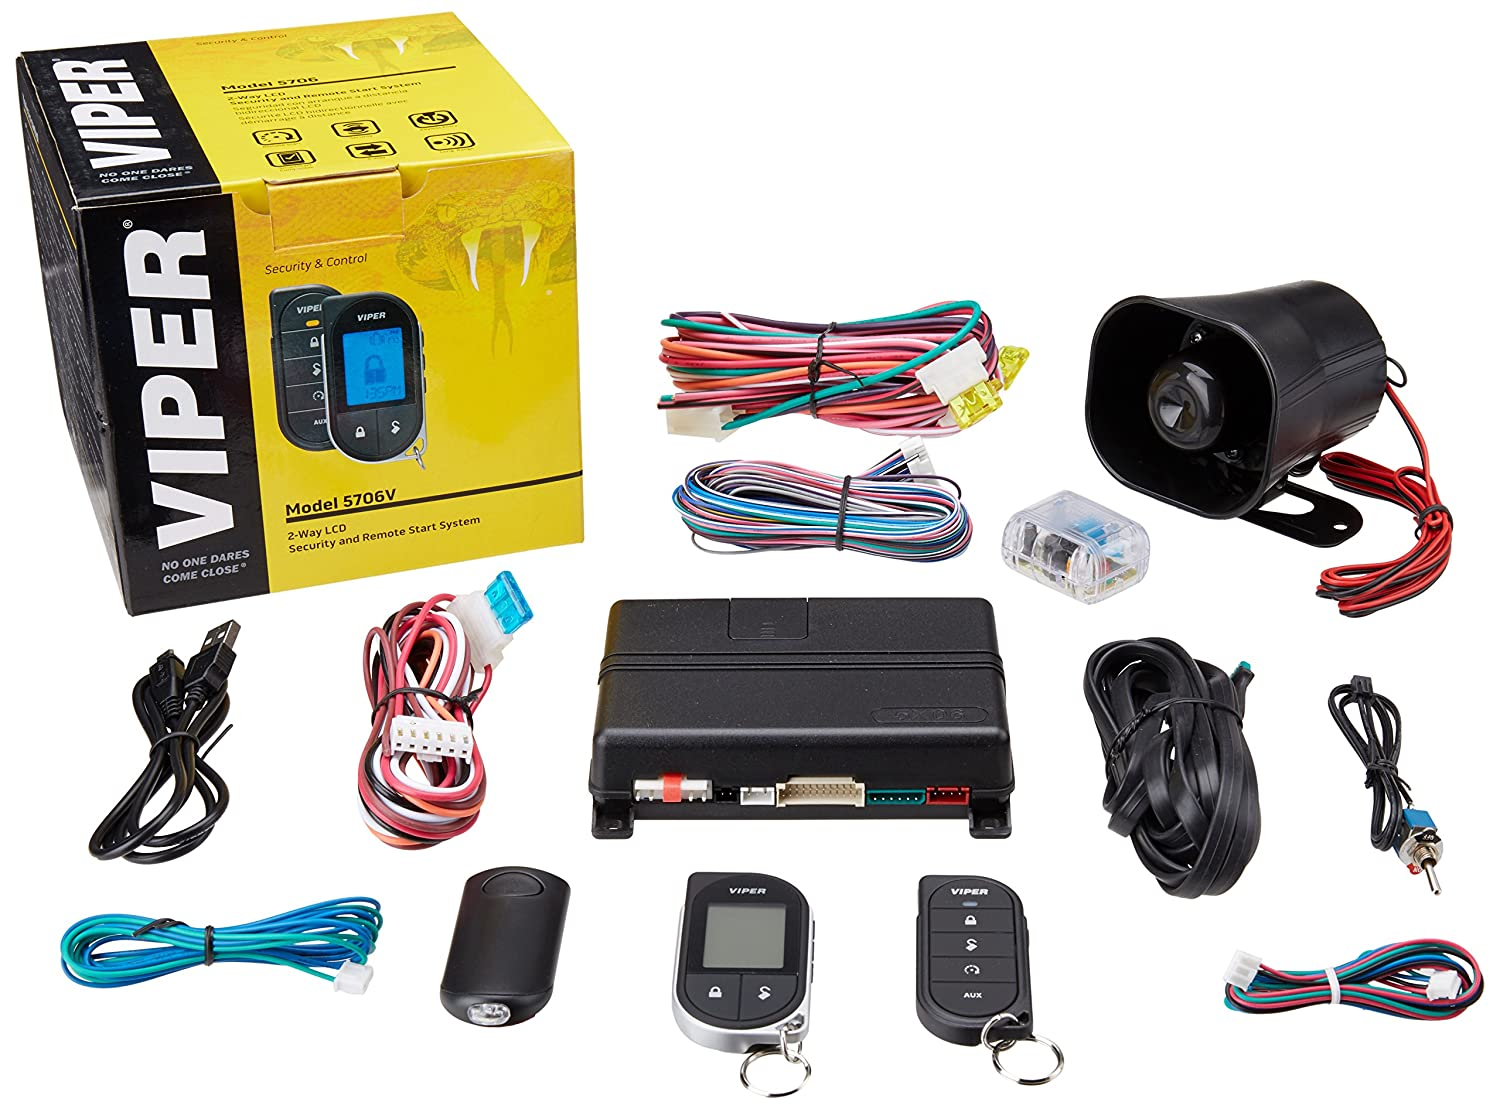 Amazon viper 5706v 2 way car security with remote start system amazon viper 5706v 2 way car security with remote start system cell phones accessories publicscrutiny Image collections